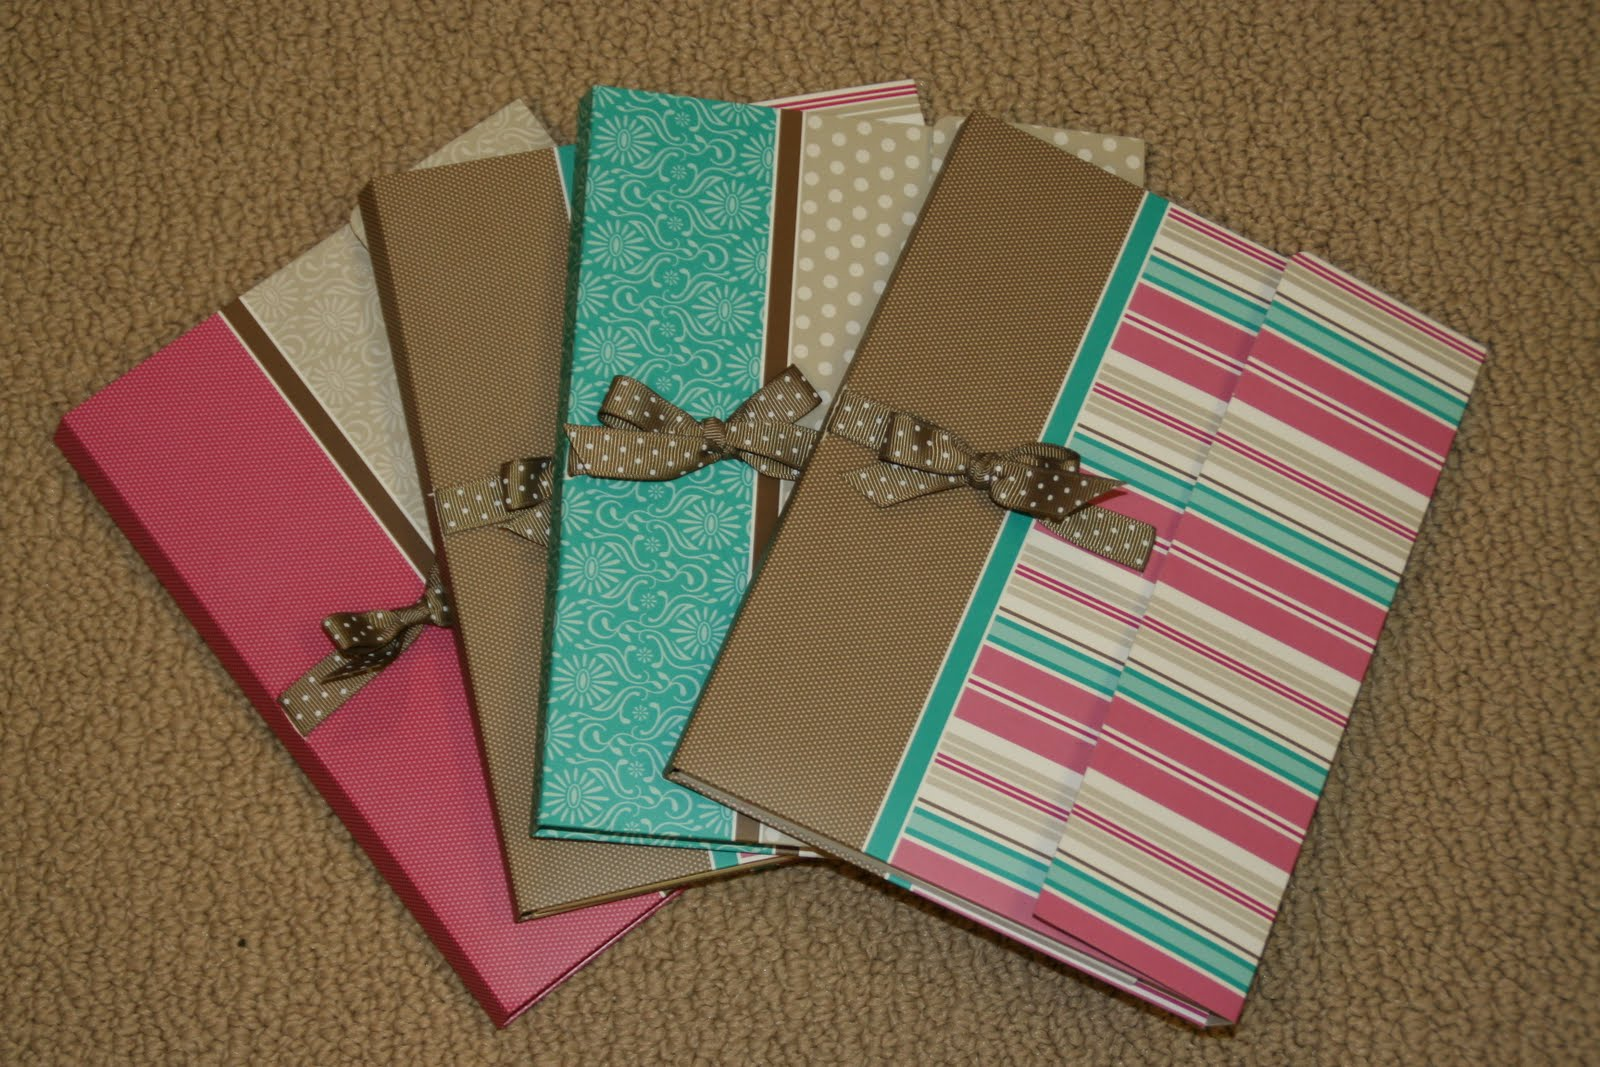 Thoroughly Modern Folders Notebooks & My Creative Corner!: Thoroughly Modern Folders Notebooks